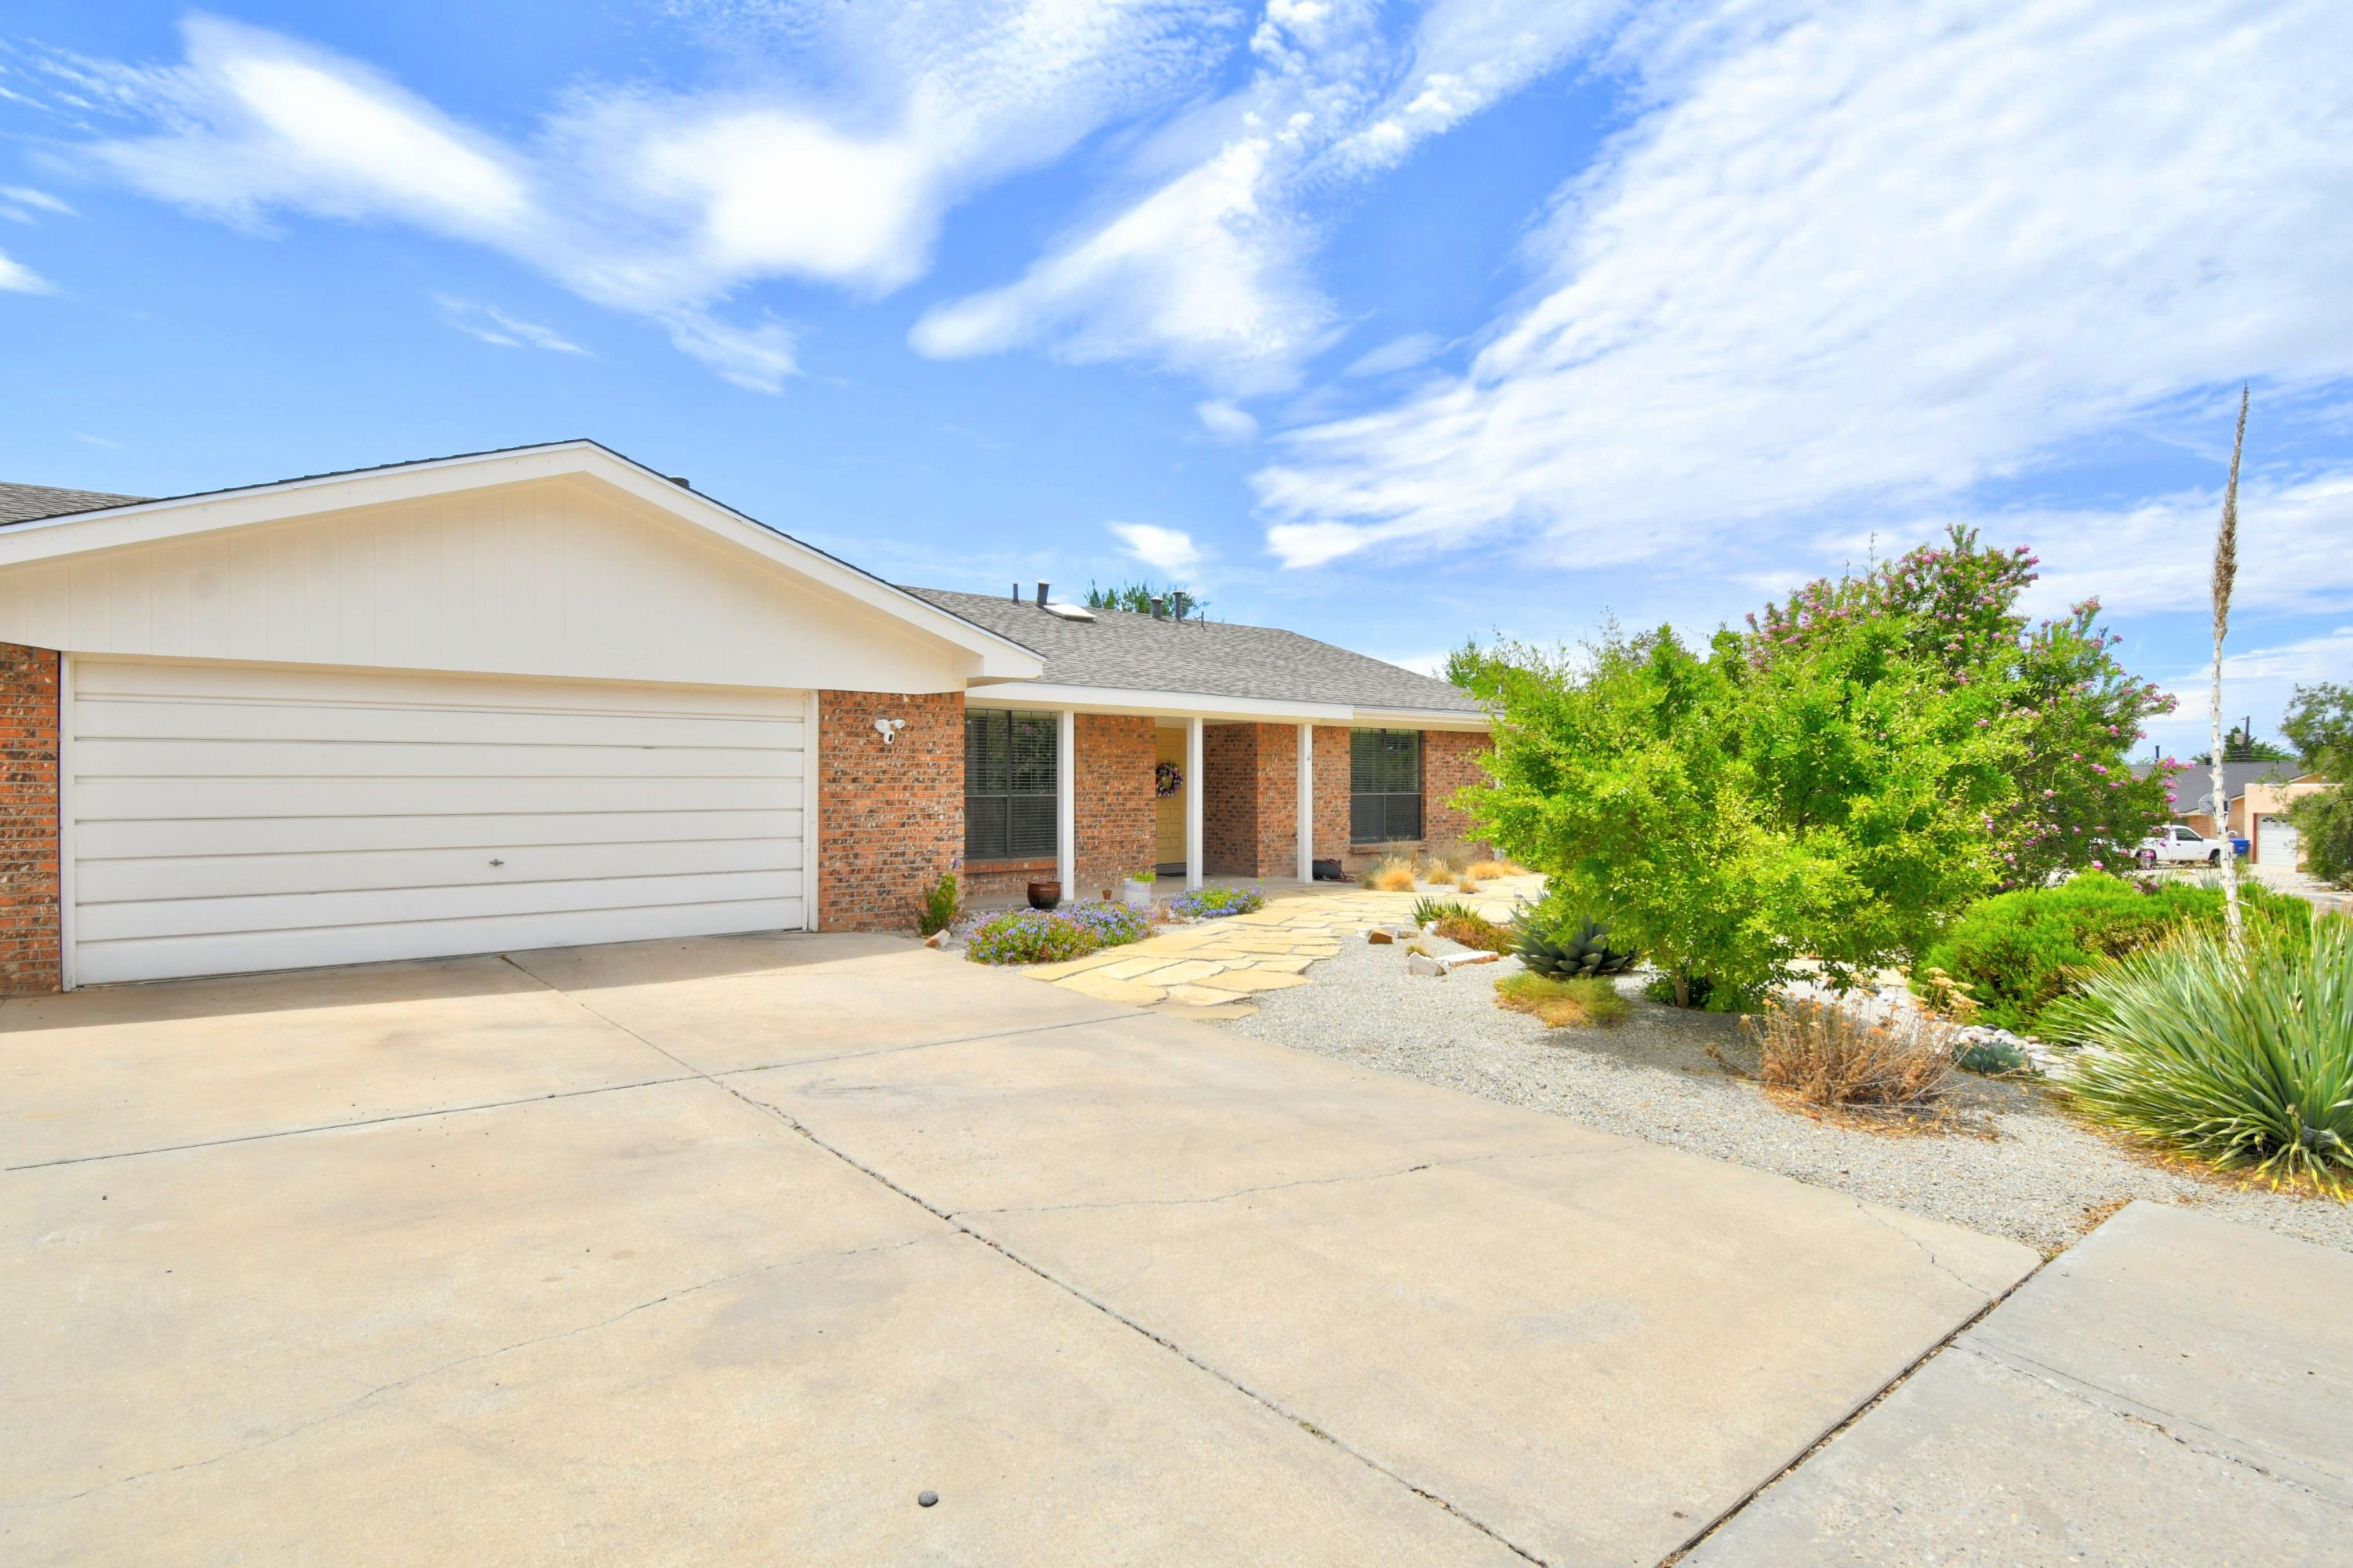 8622 HORACIO Place NE Property Photo - Albuquerque, NM real estate listing